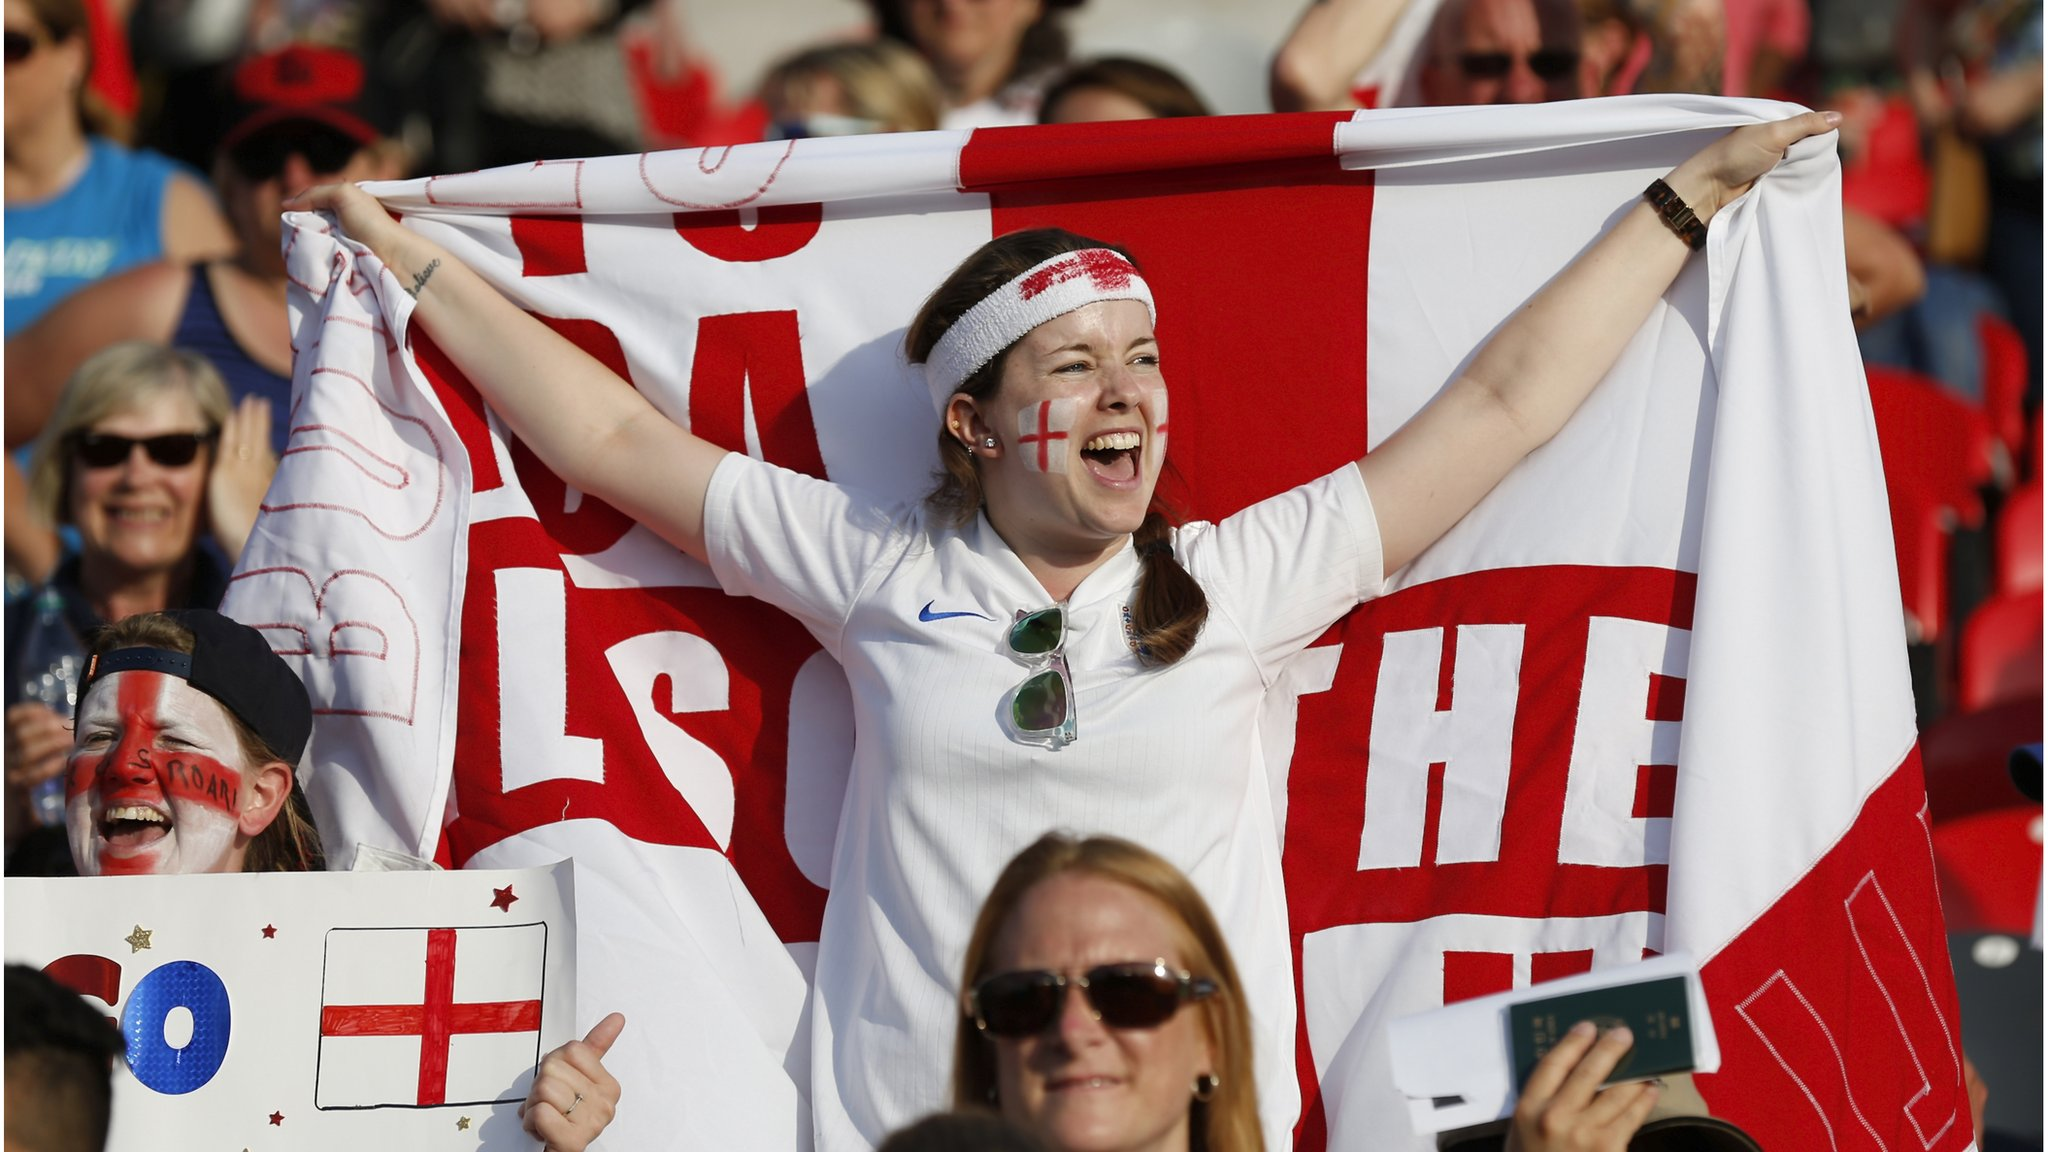 Women's World Cup: Fifa 'doing everything they can' to seat families together